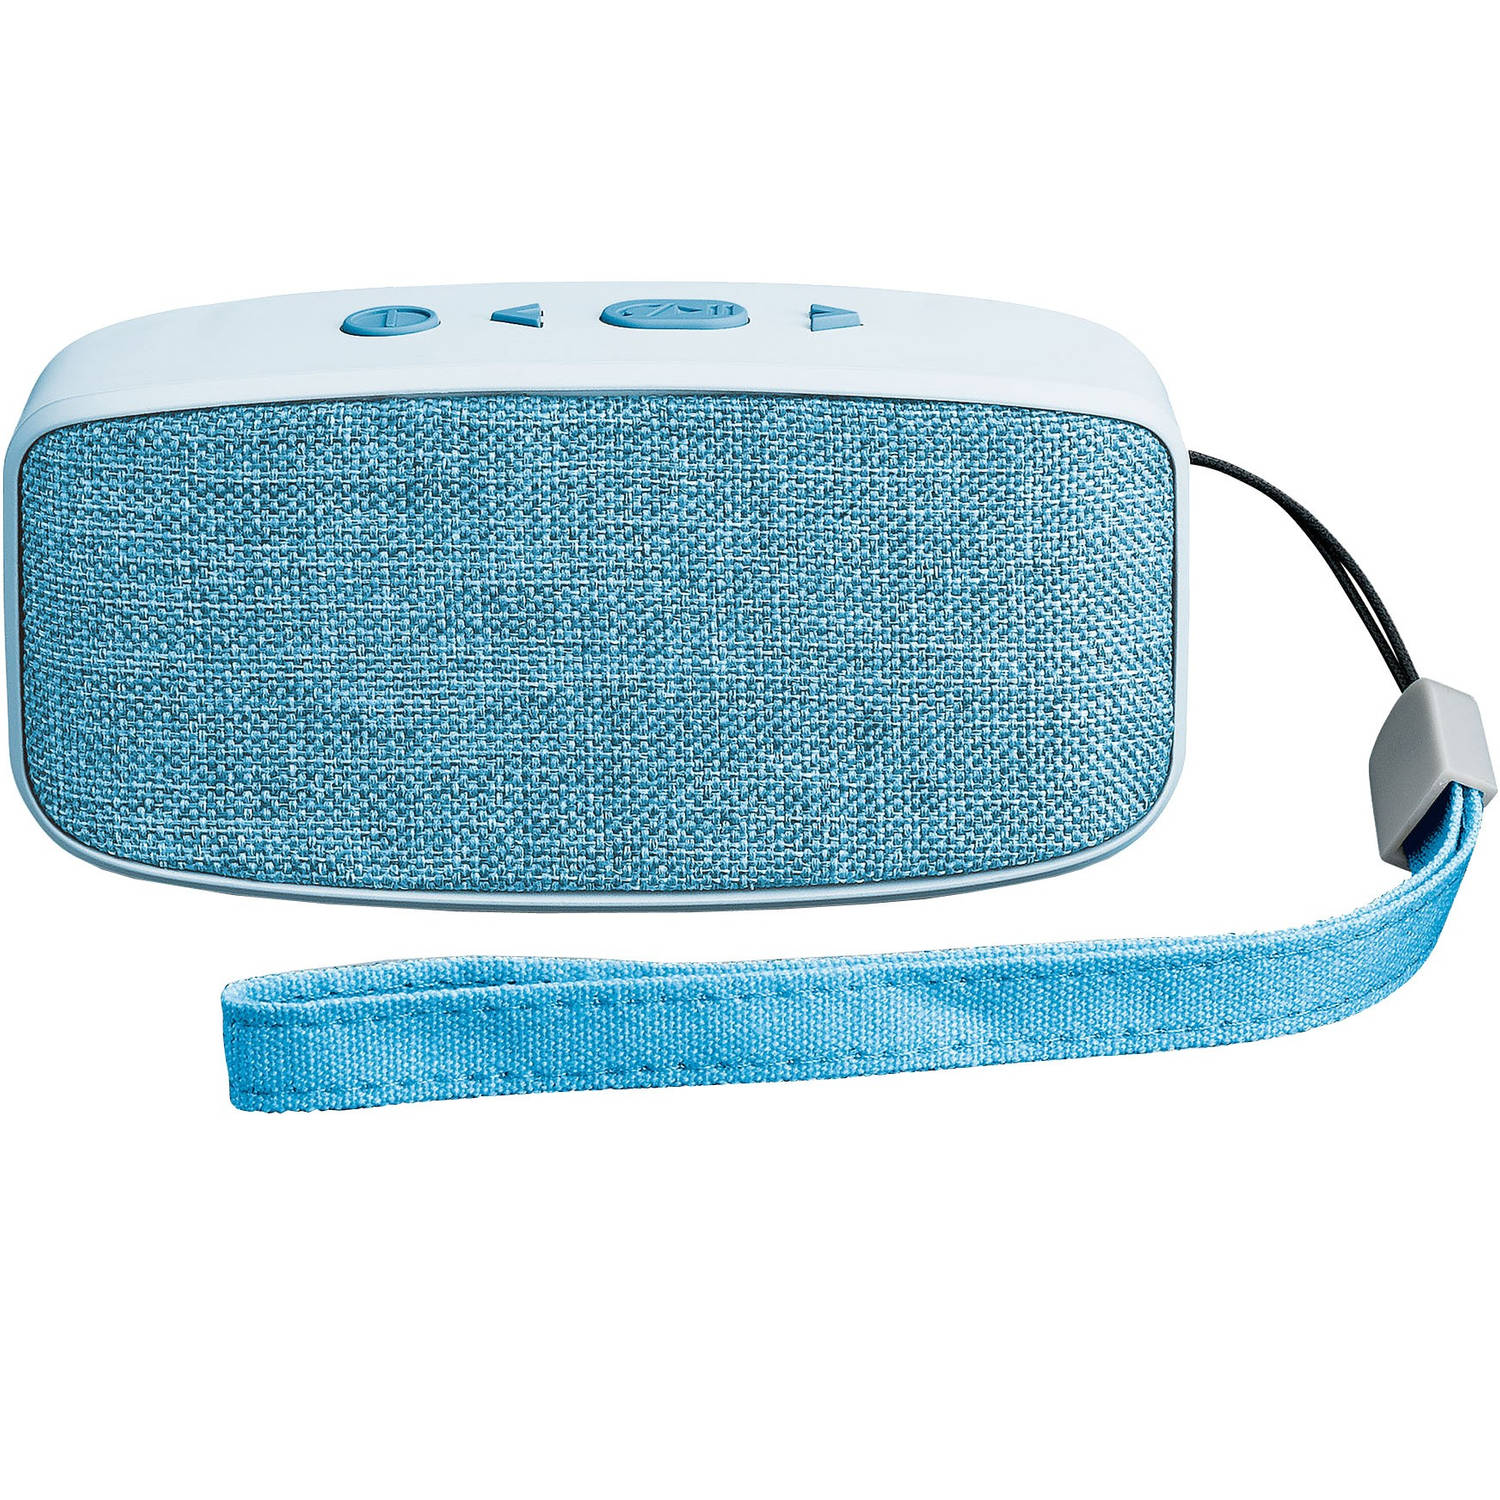 BT-120 Bluetooth Speaker